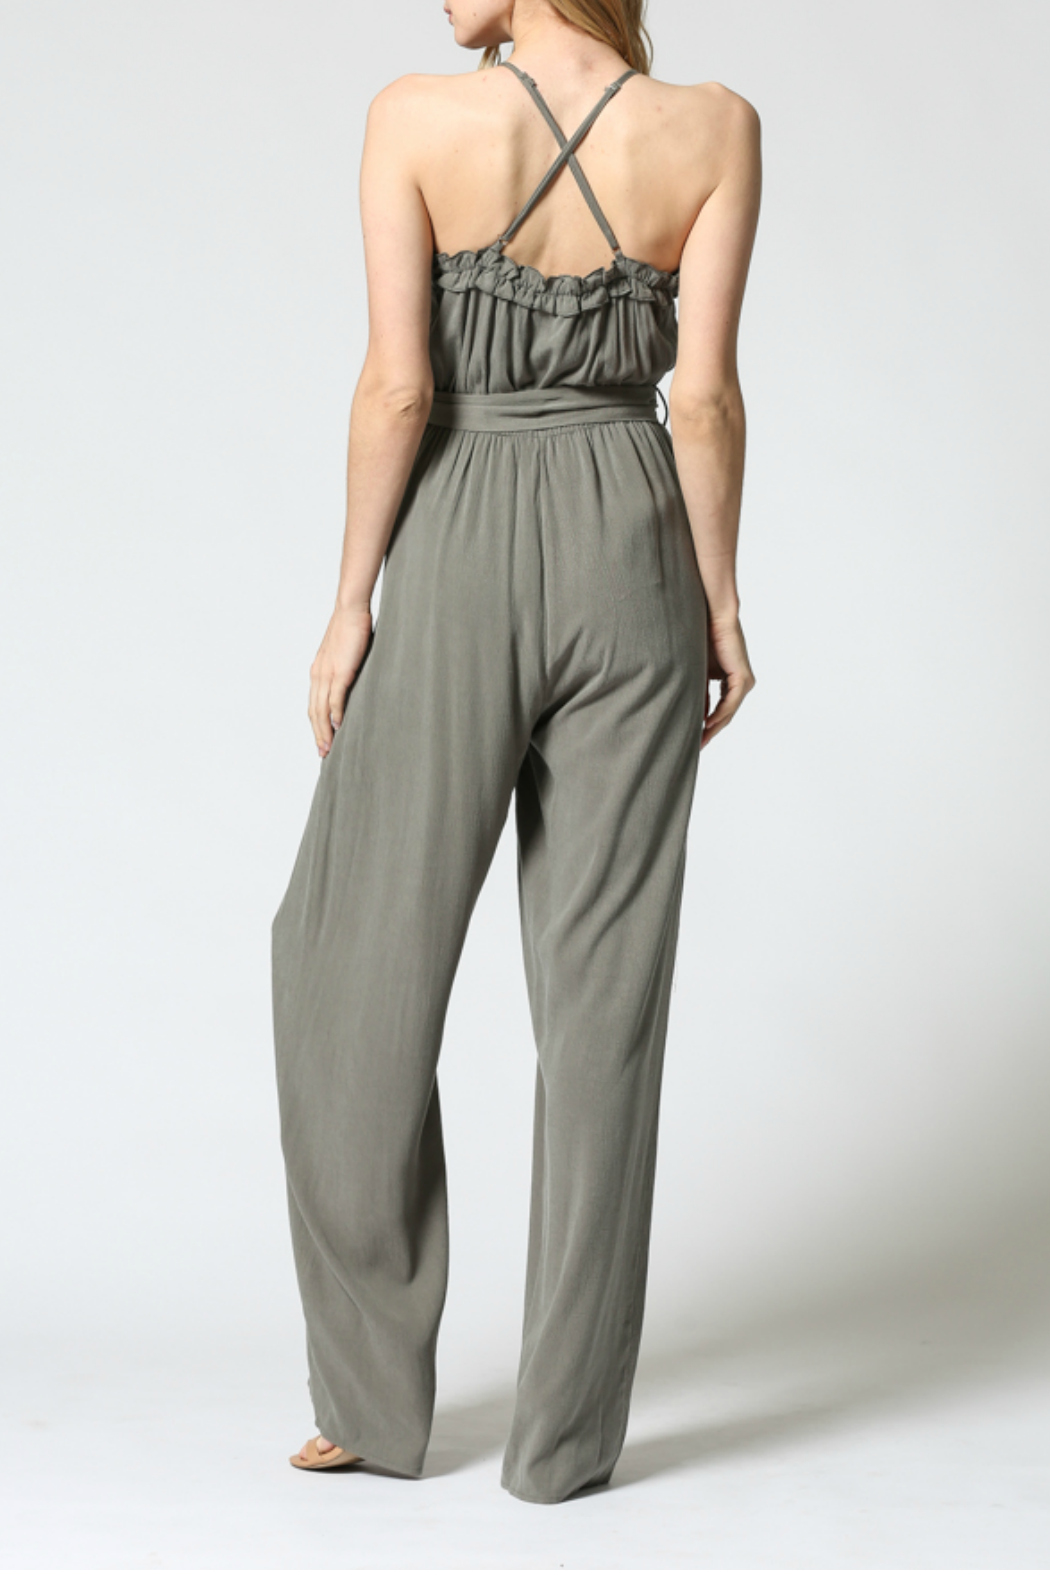 FATE by LFD Ruffled edge jumpsuit - Side Cropped Image